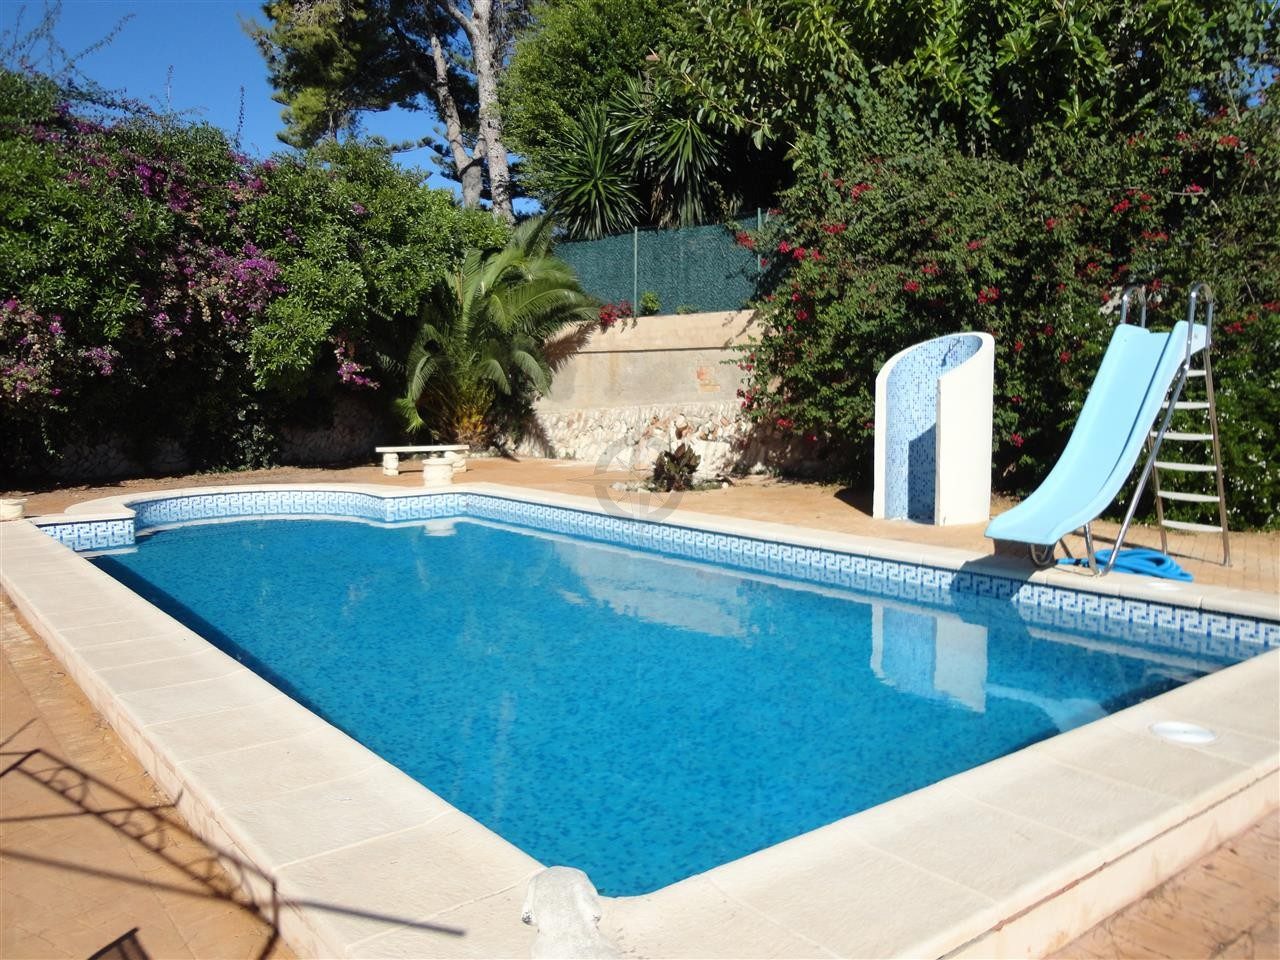 5 Bedrooms 4 Bathrooms In Tossalet Javea